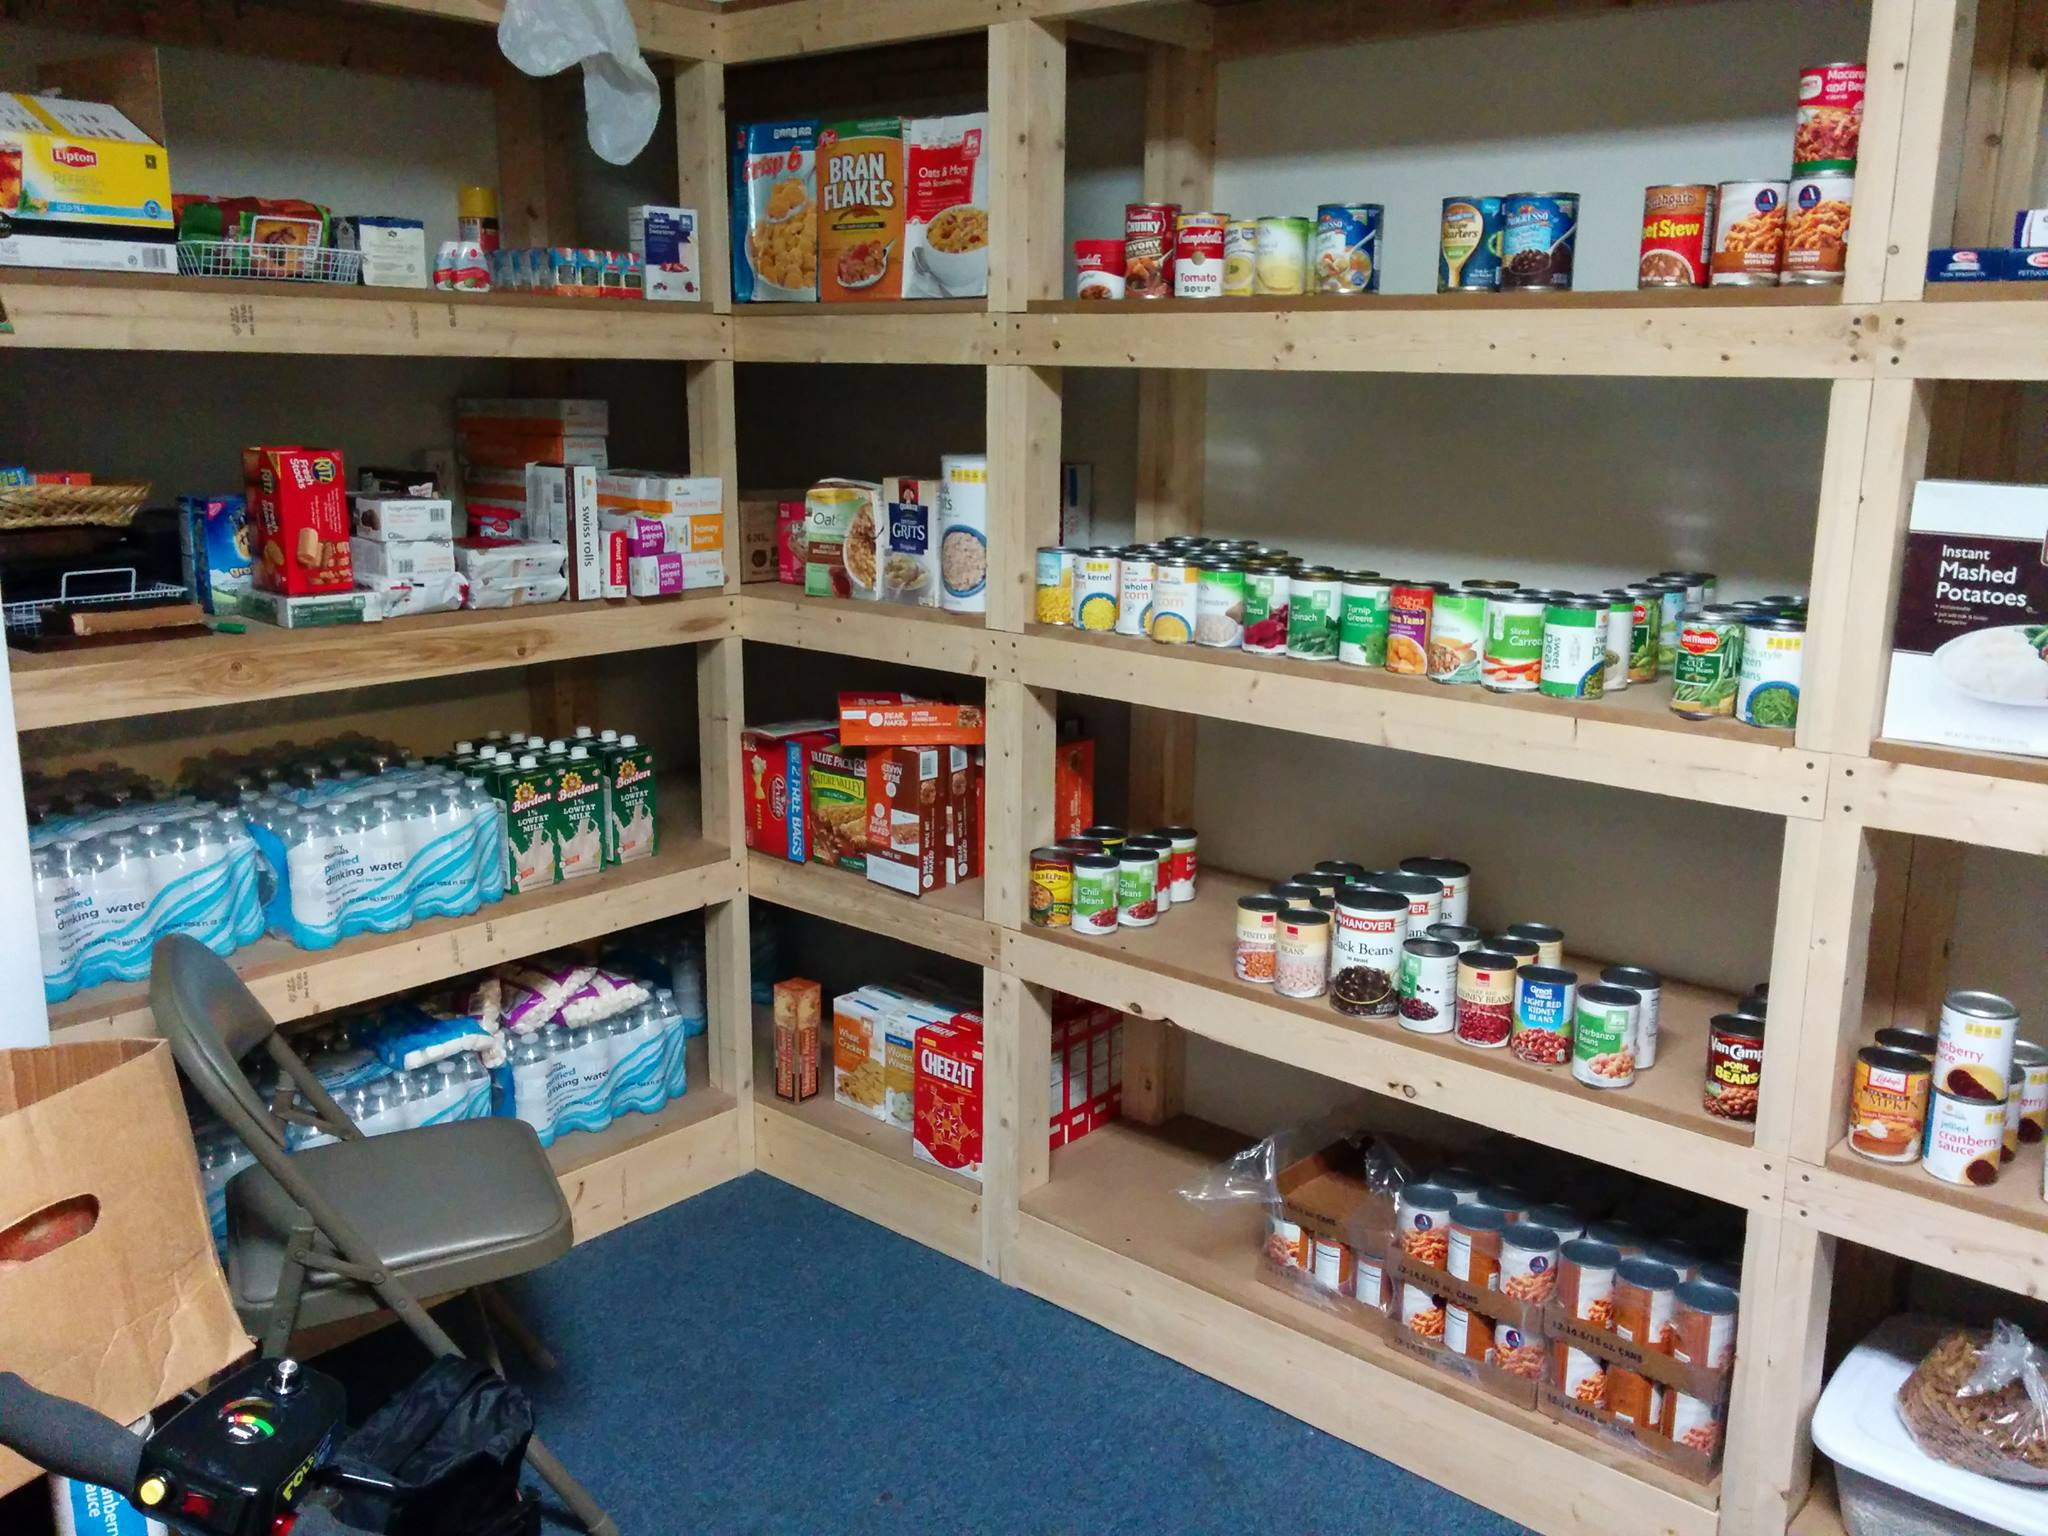 Clinton County 24 Hour Food Pantry